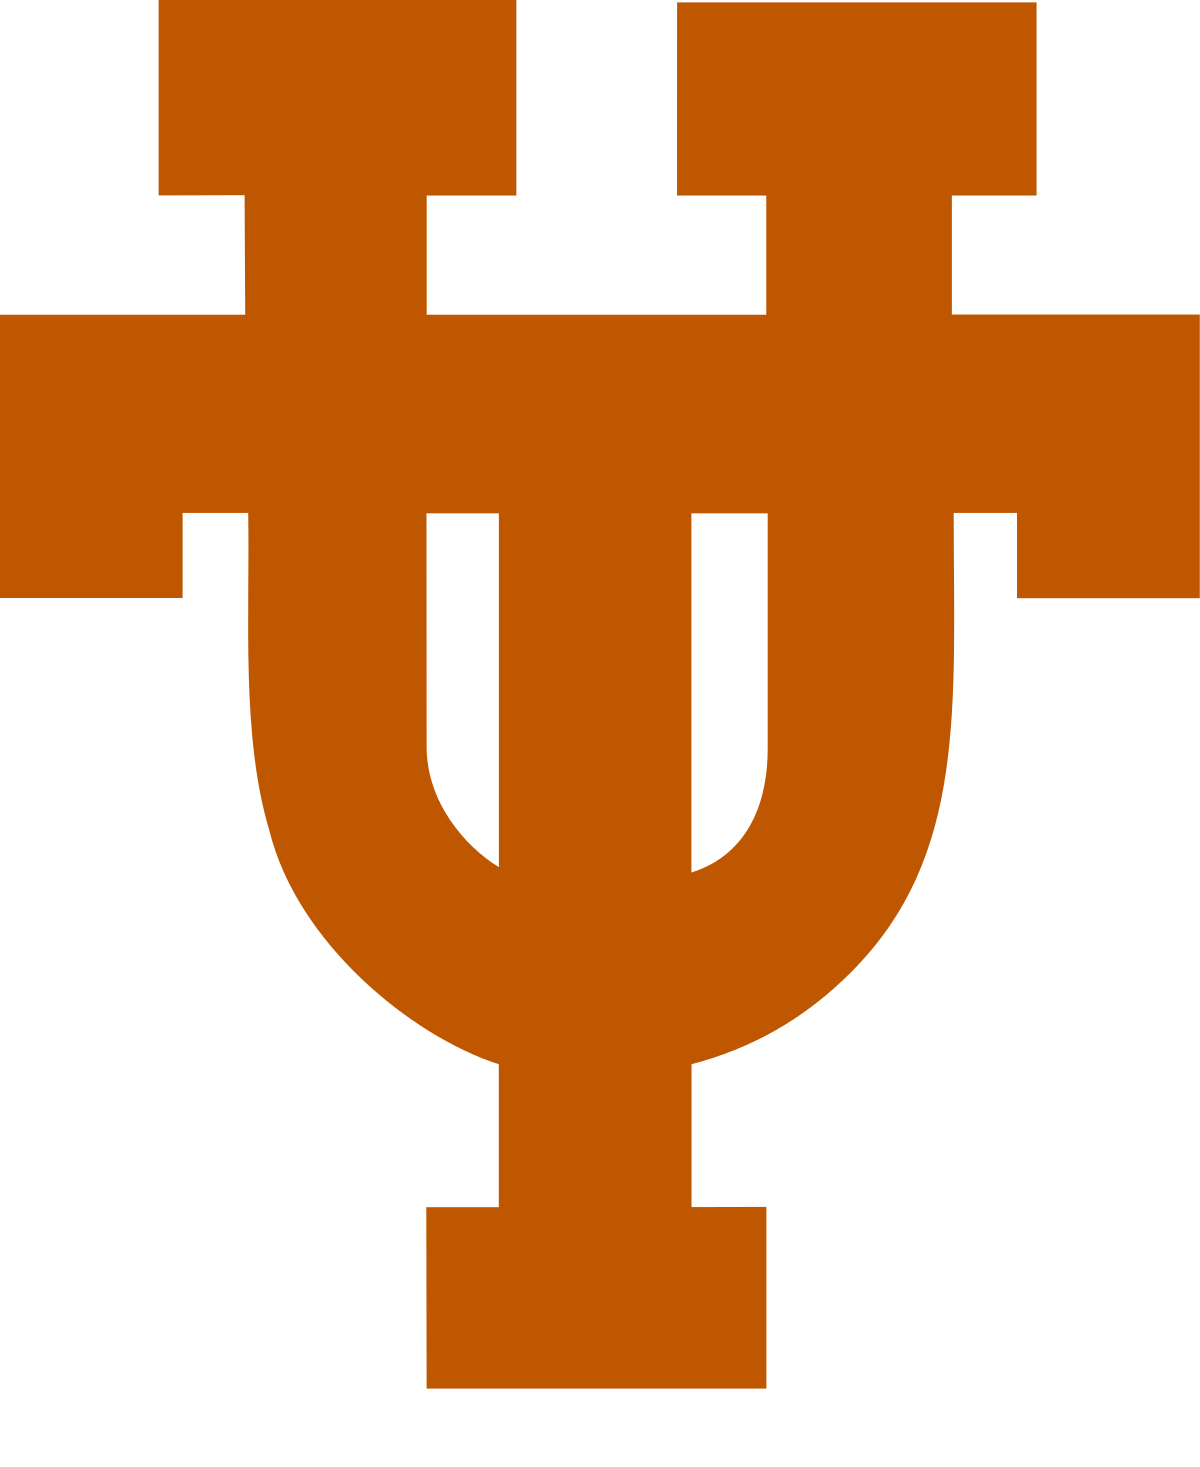 Texas tech football rivalry. Longhorn clipart orange